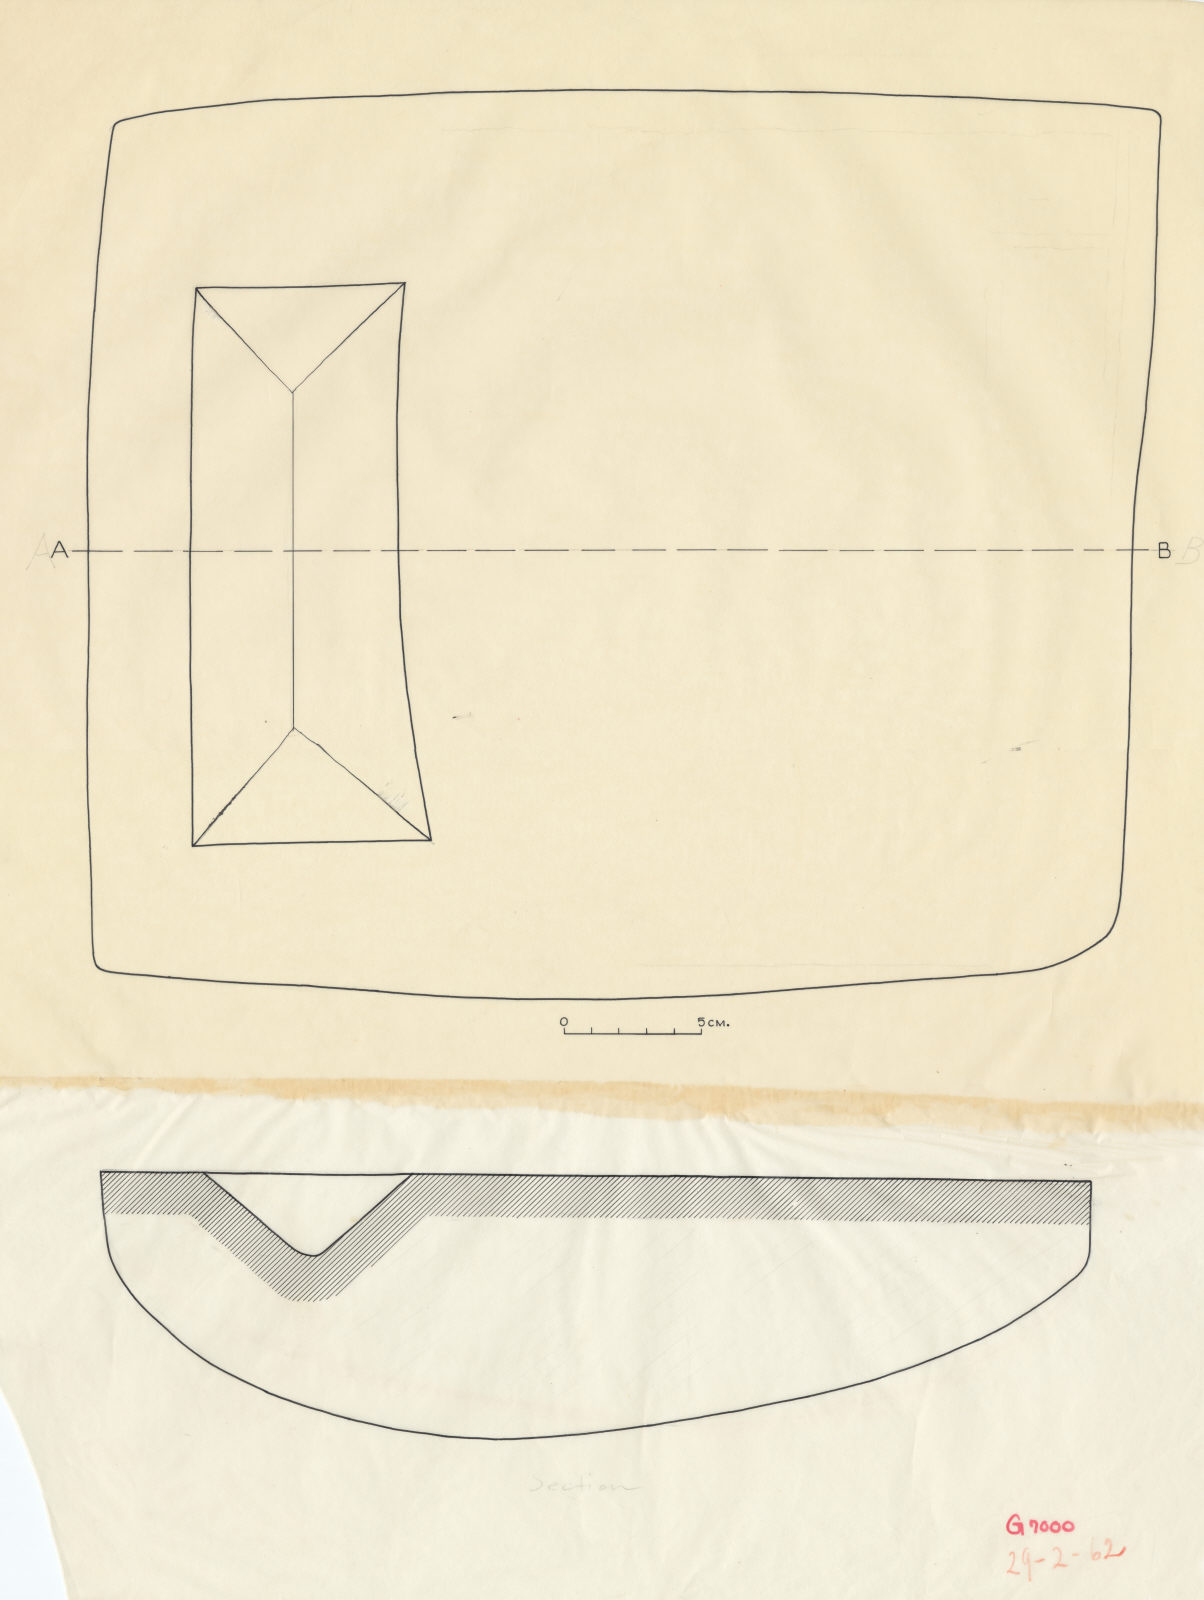 Drawings: G 7000 SE 103: offering basin, plan and section